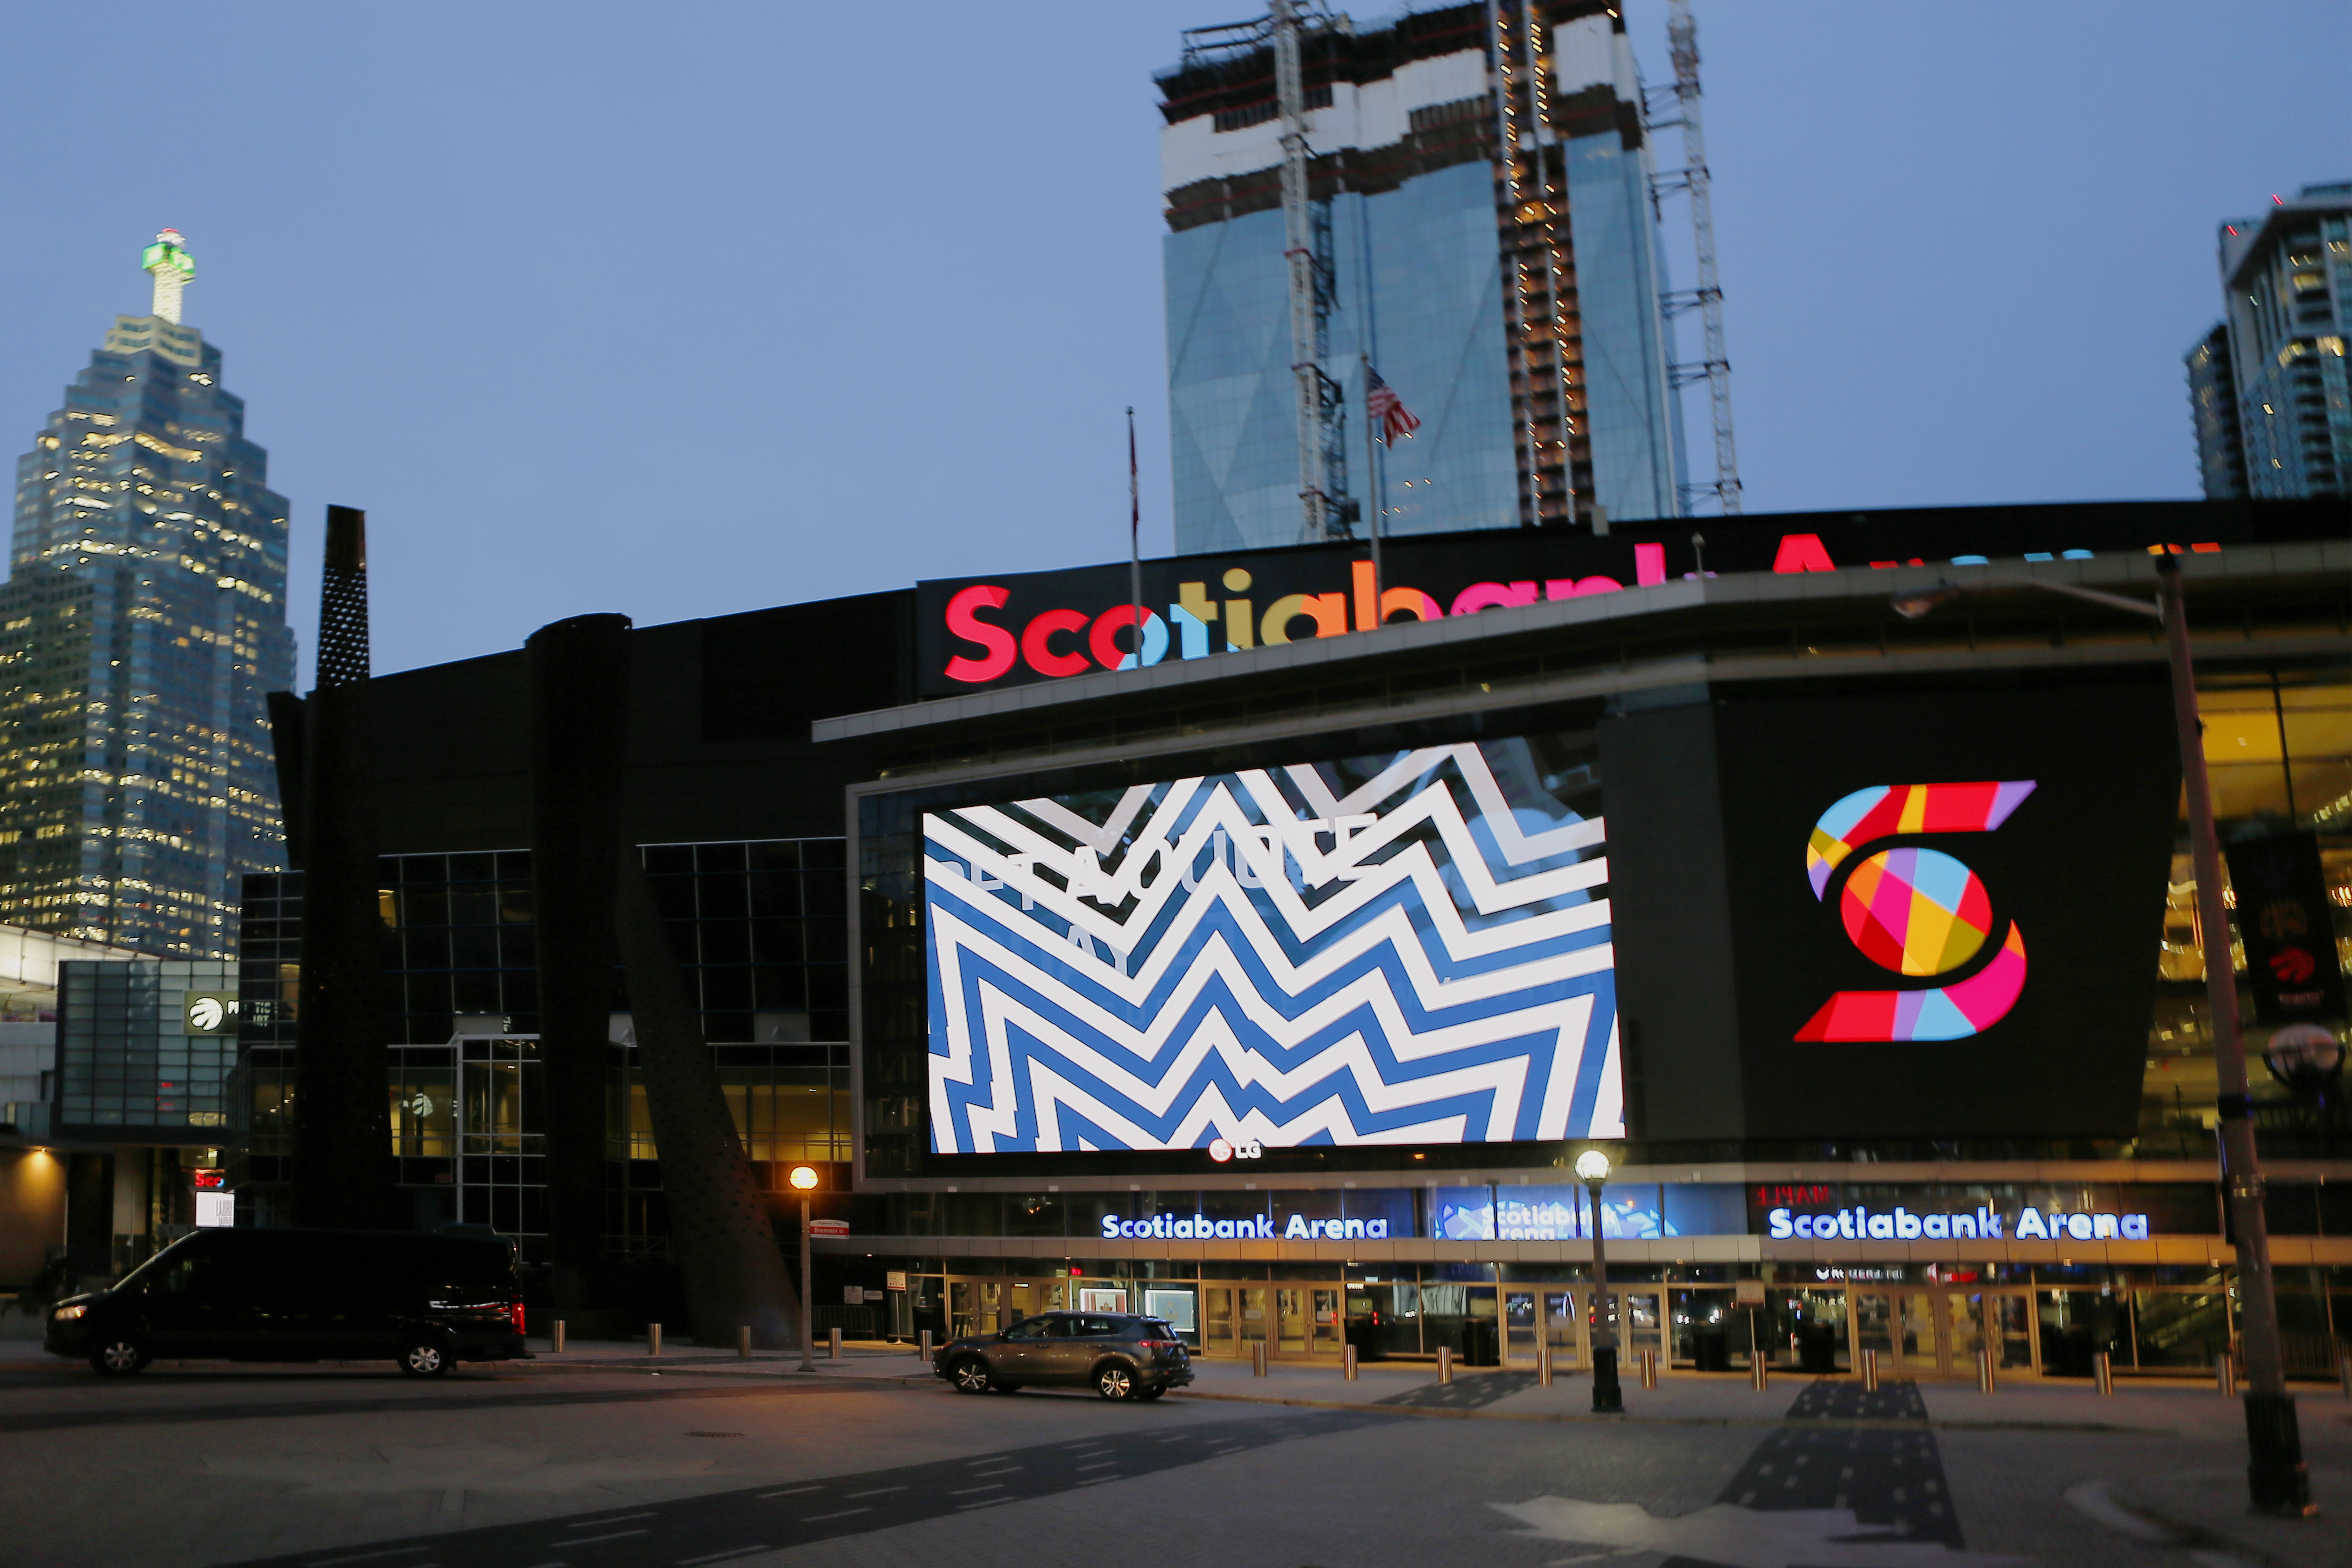 Mar 12, 2020; Toronto, Ontario, CAN; A general view of Scotiabank Arena after the cancellation of a game between the Nashville Predators and Toronto Maple Leafs. Mandatory Credit: John E. Sokolowski-USA TODAY Sports